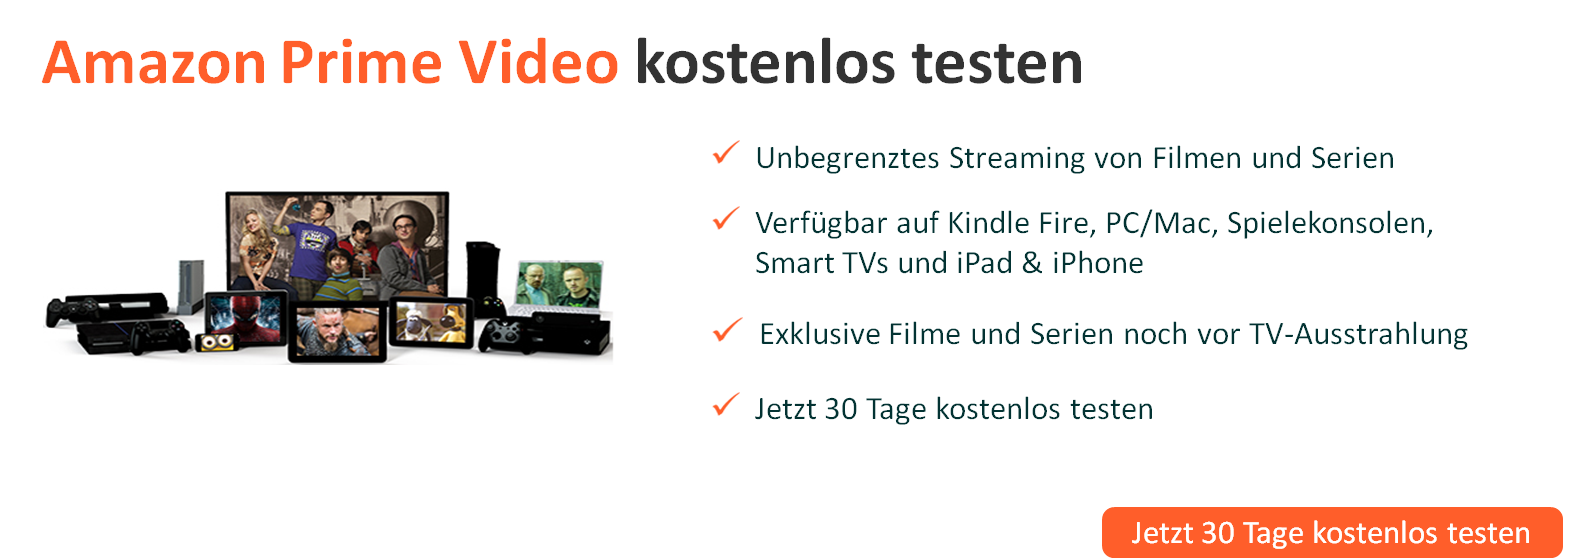 Amazon Prime Video kostenlos testen